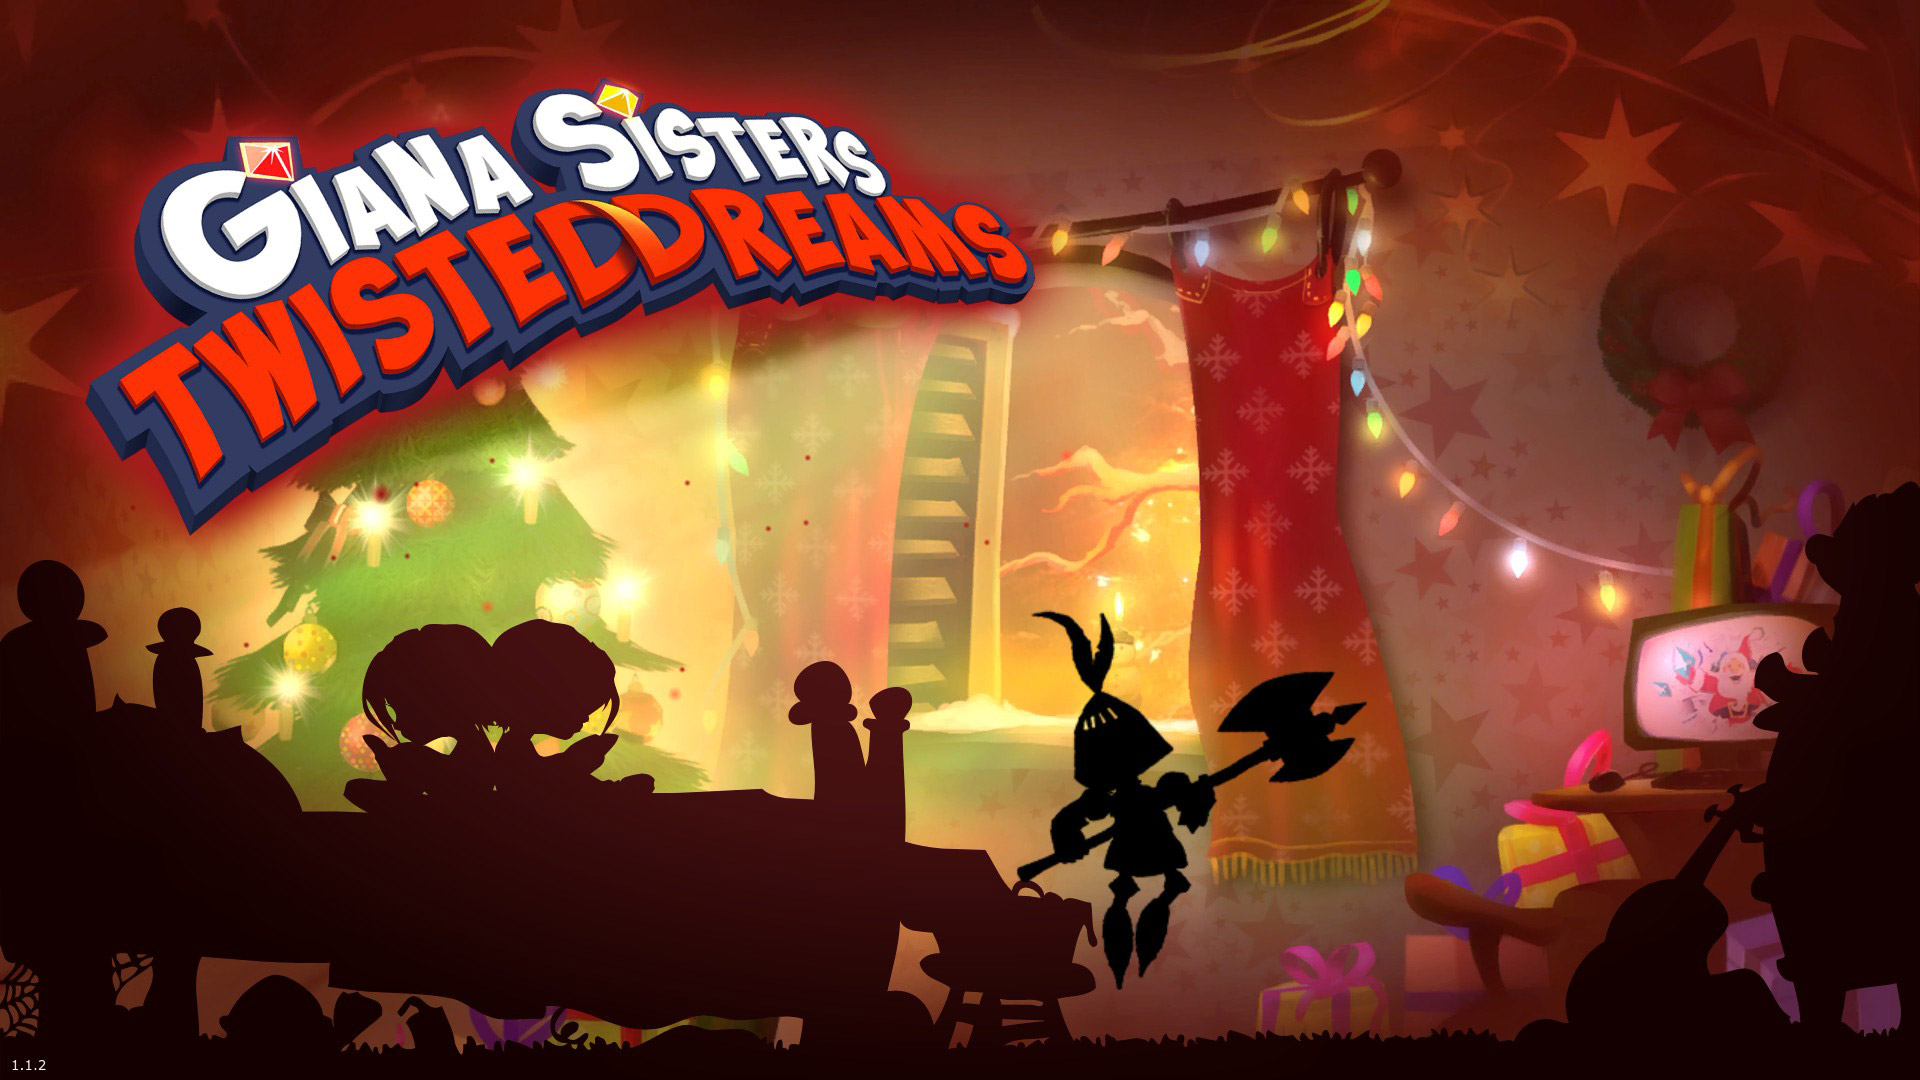 Free Giana Sisters: Twisted Dreams Wallpaper in 1920x1080